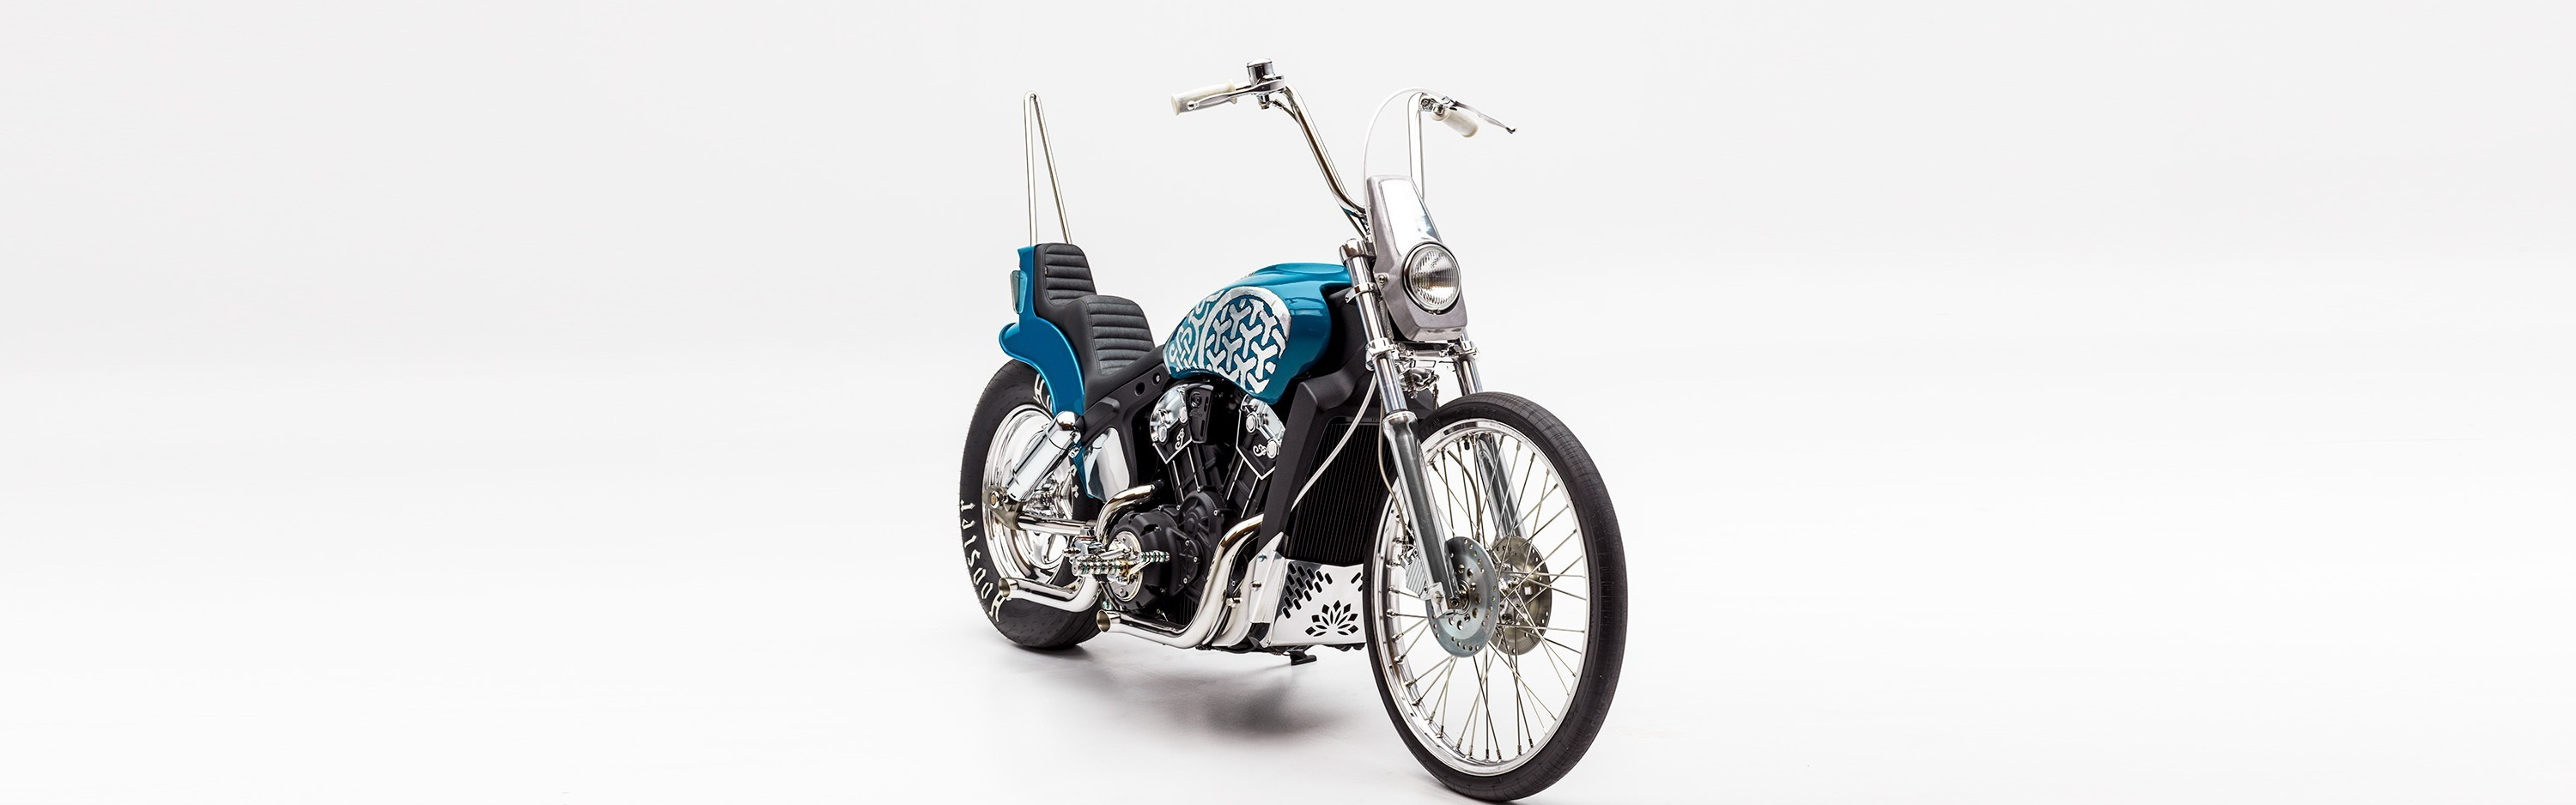 indian-motorcycle-the-wrench-scout-bobber-build-off-14